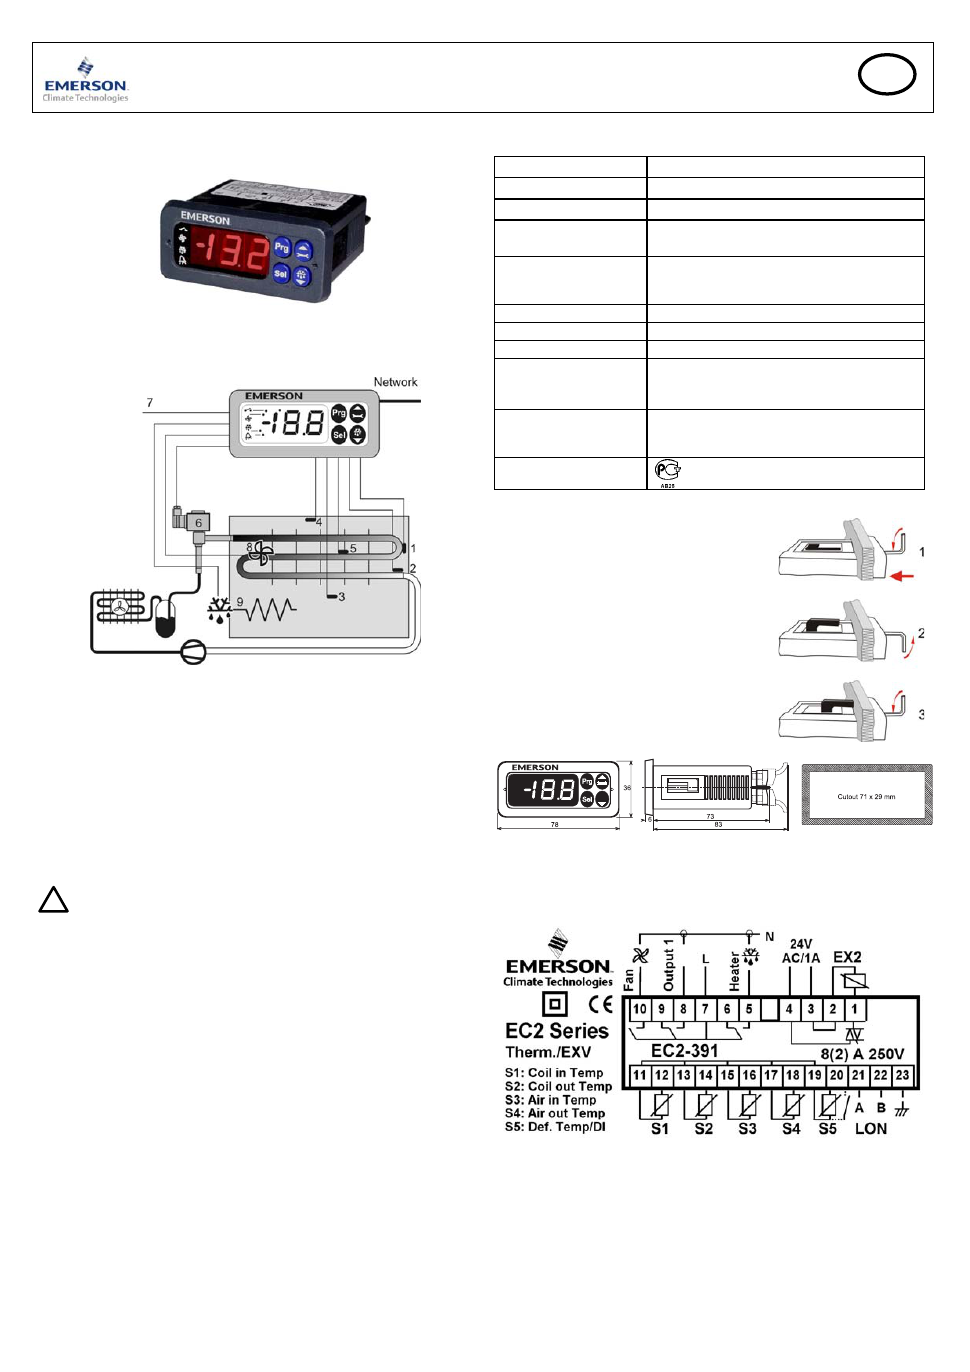 Cold Room Controller Wiring Diagram Worksheet And Fire Pump Emerson Display Case Ec2 391 User S Manual Rh Manualagent Com Heater With Control Baord Sterling Spp Pumps